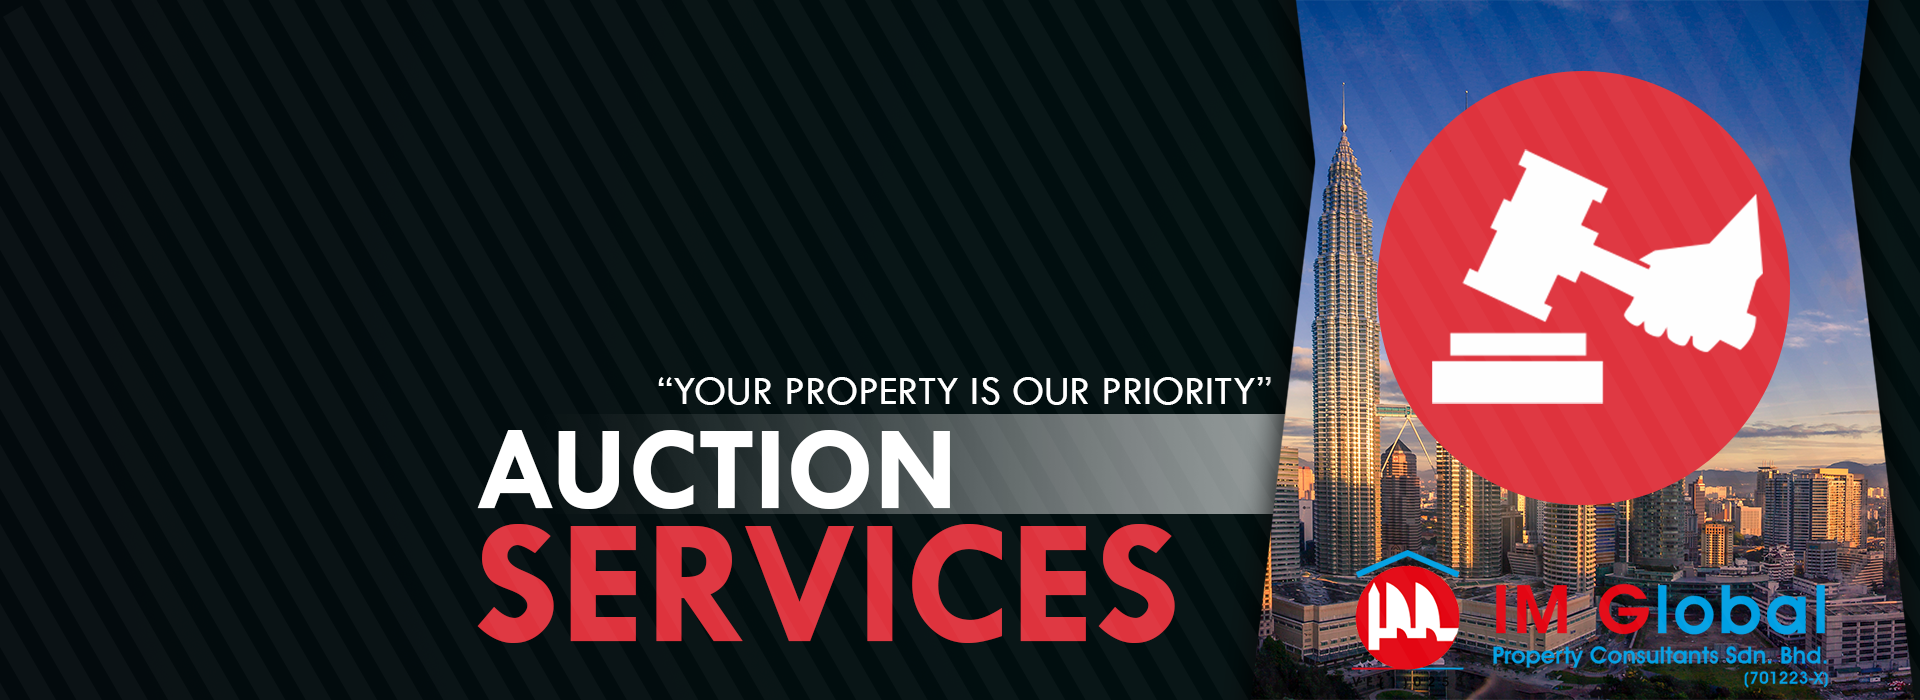 AUCTION-SERVICES